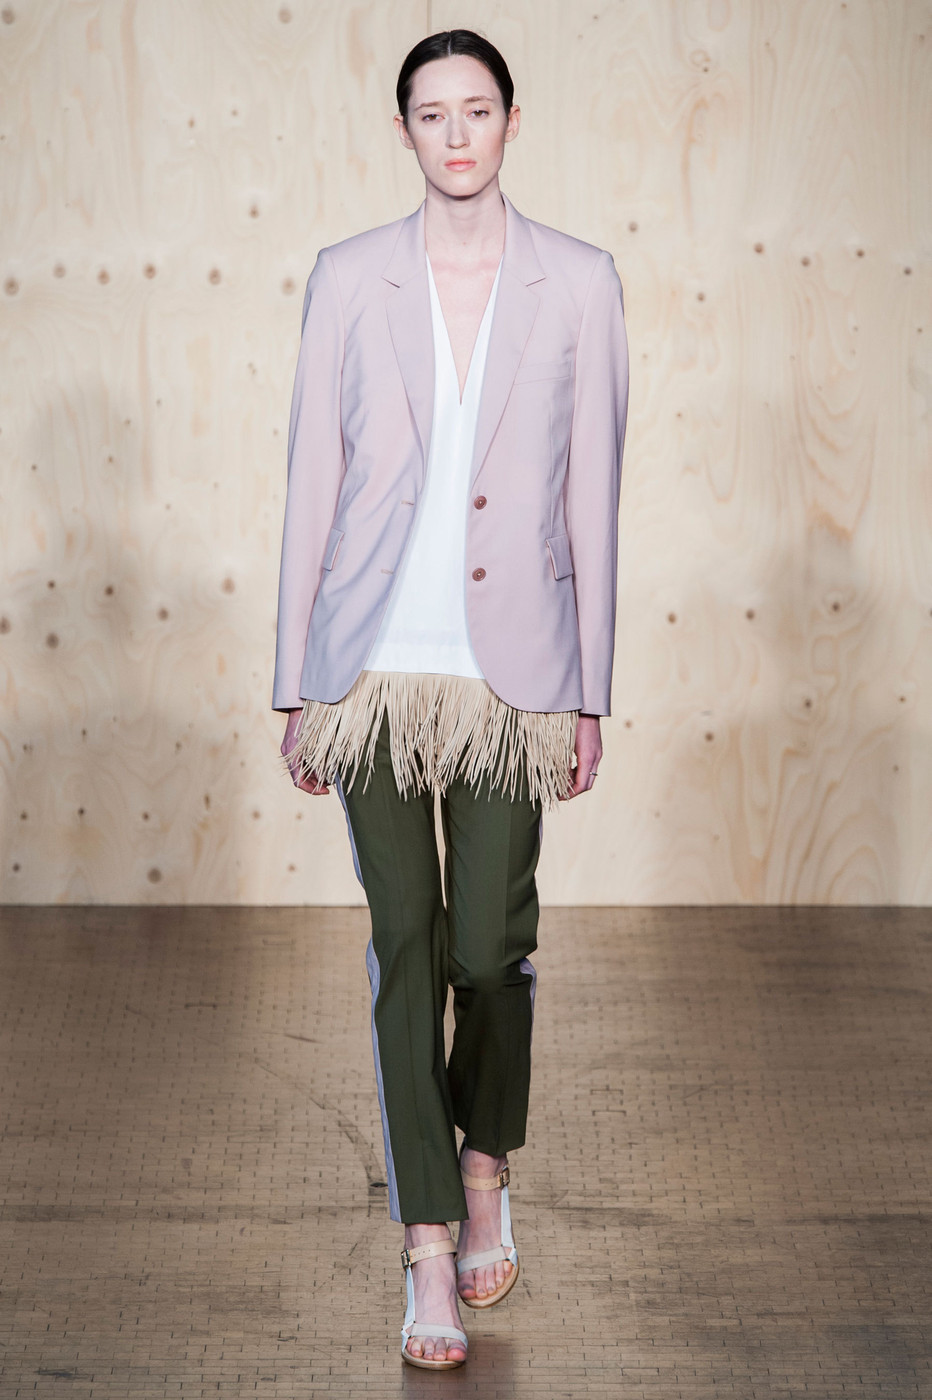 Paul Smith Spring 2015 The Best Runway Looks At London Fashion Week Spring 2015 Stylebistro